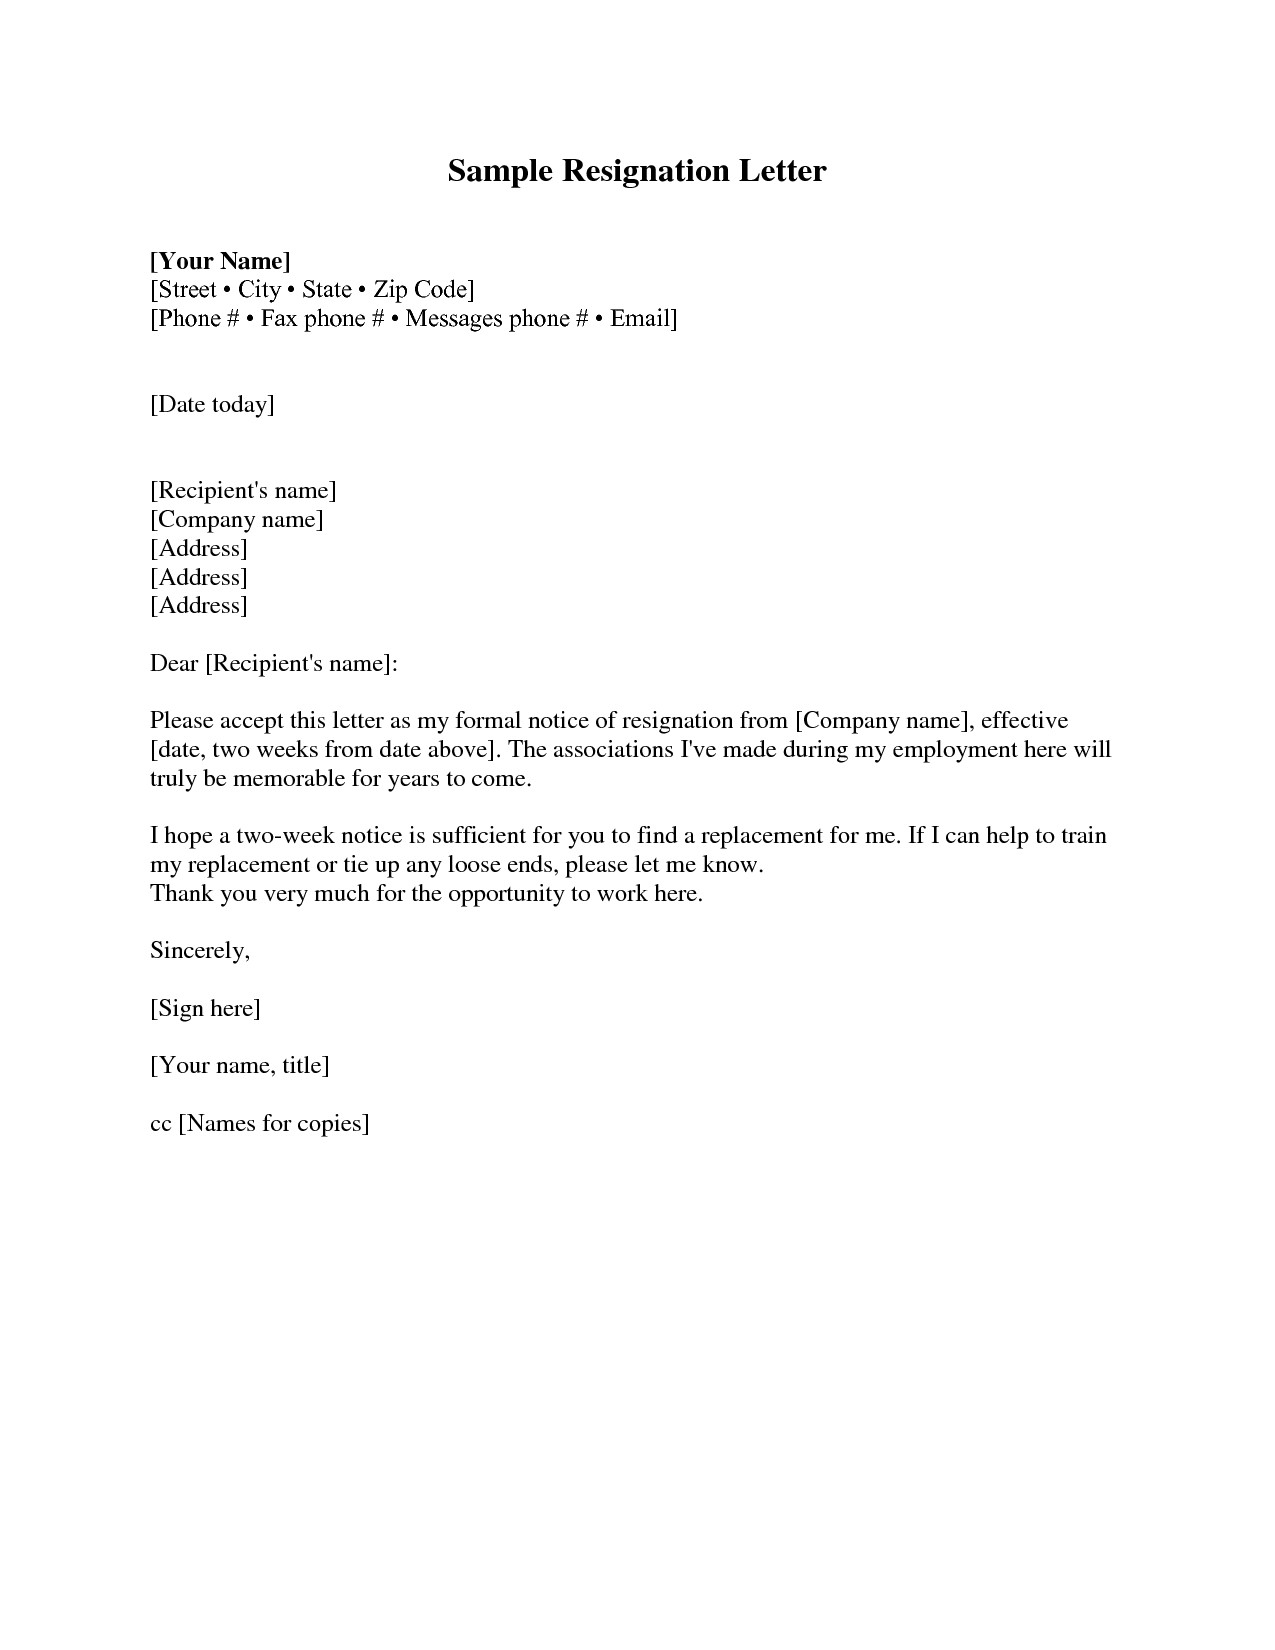 Sample Resignation Letter Template - Resignation Letter Examples 2 Weeks Notice Acurnamedia